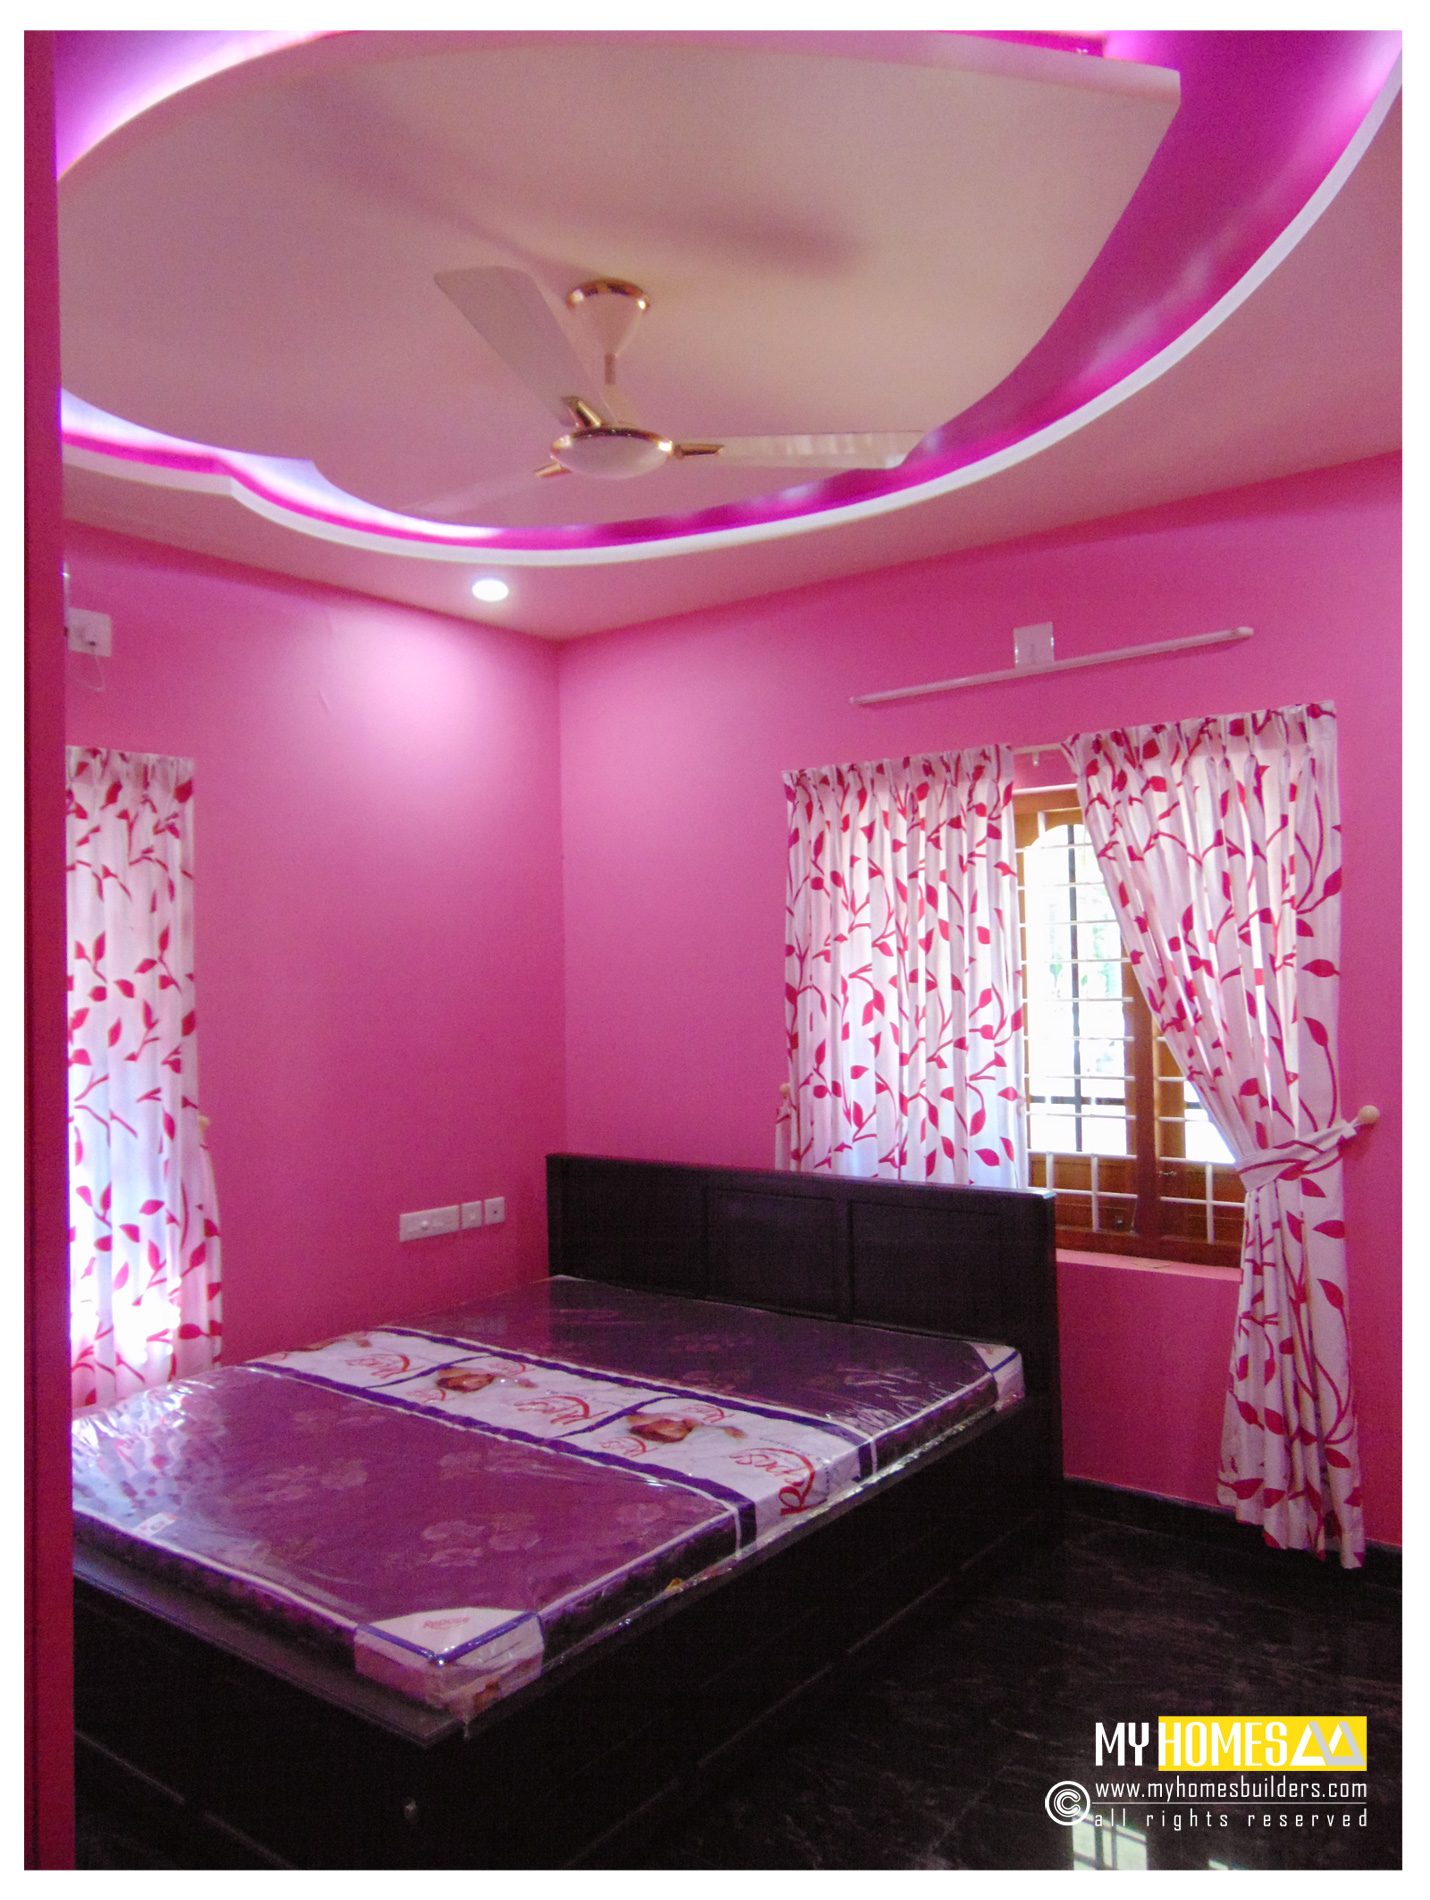 Simple style kerala bedroom designs ideas for home interior Interior design ideas for kerala houses